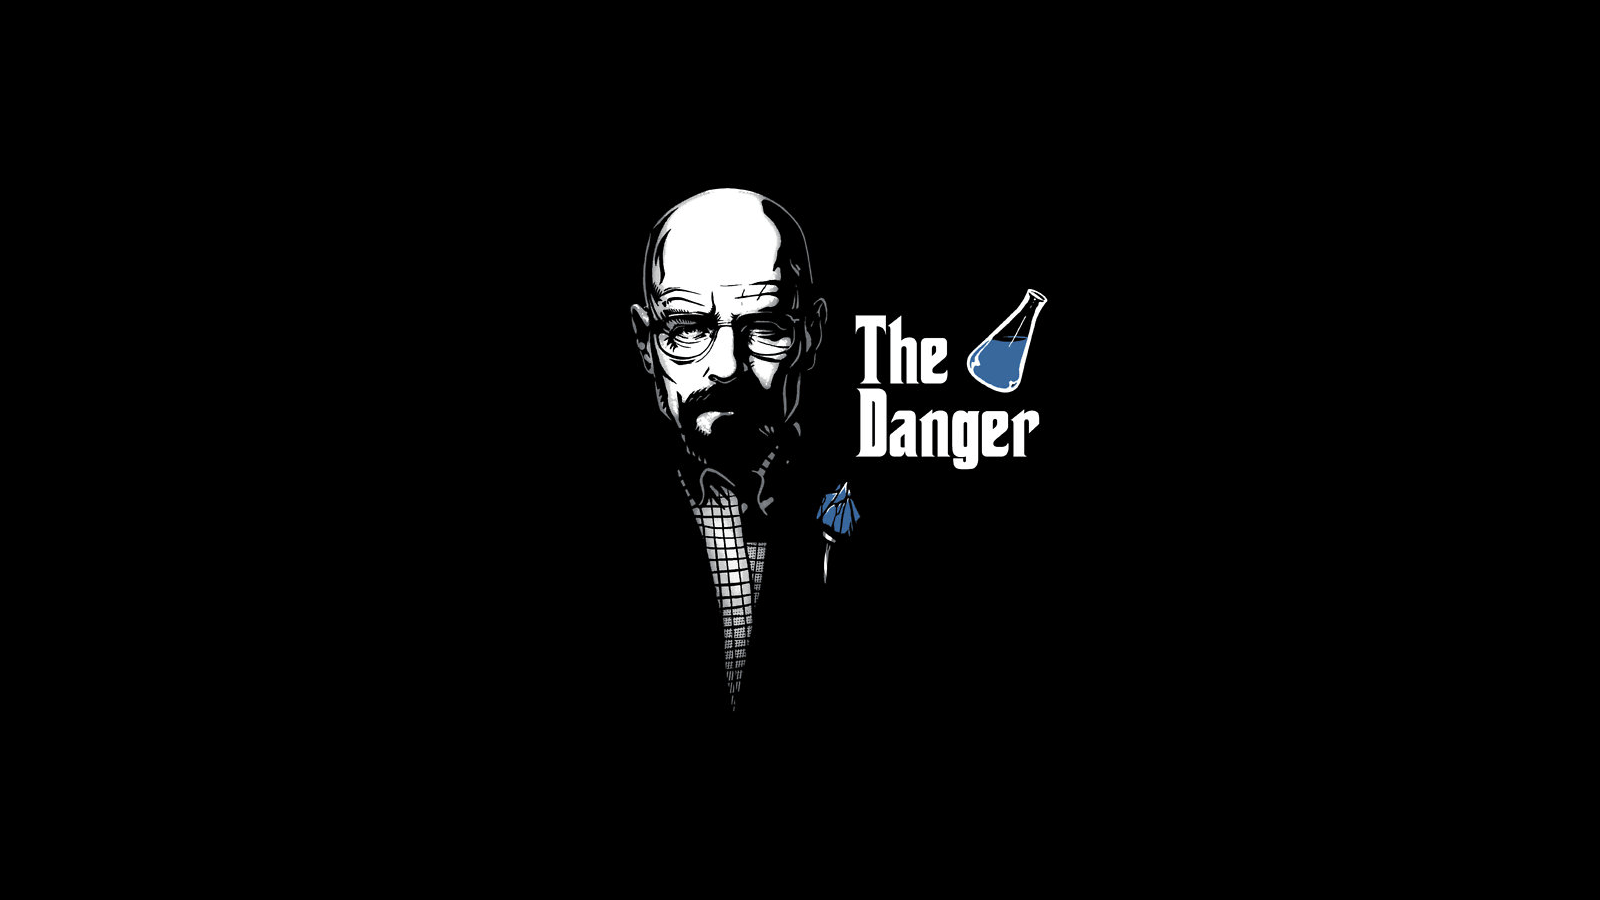 breaking bad 50 wallpapers - photo #15